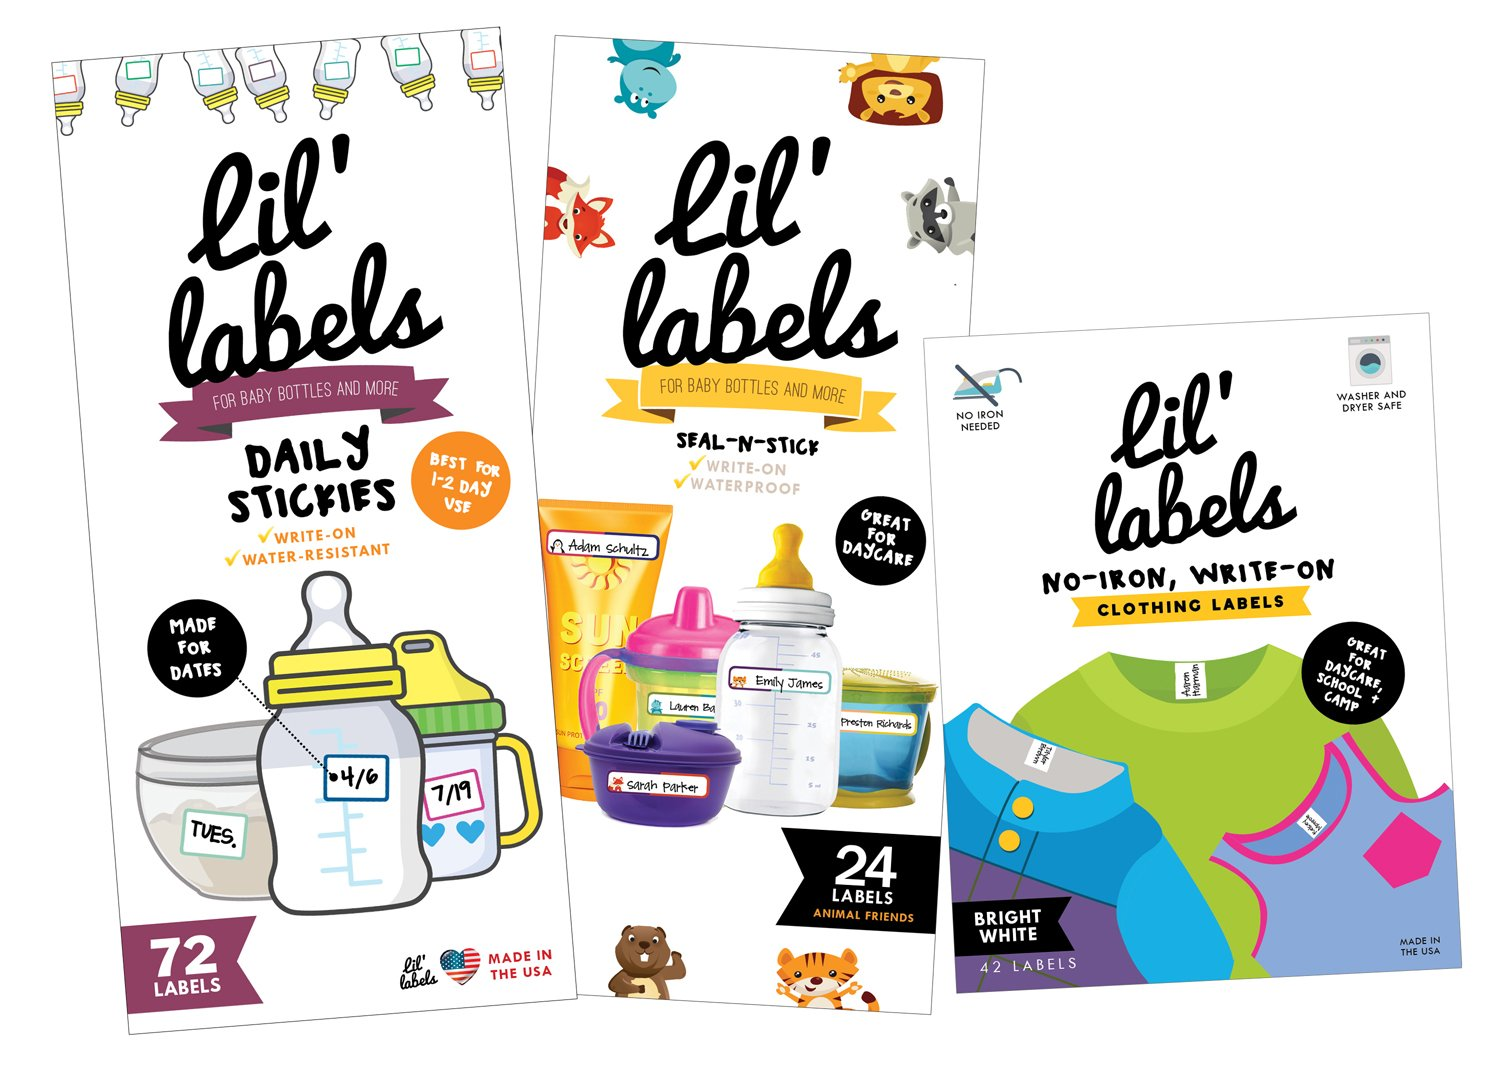 Daycare MEGA Pack - Write On Kids Name Labels, Waterproof (Animal Baby Bottle Labels/Plain Clothing Labels/Date Labels) by Lil' Labels